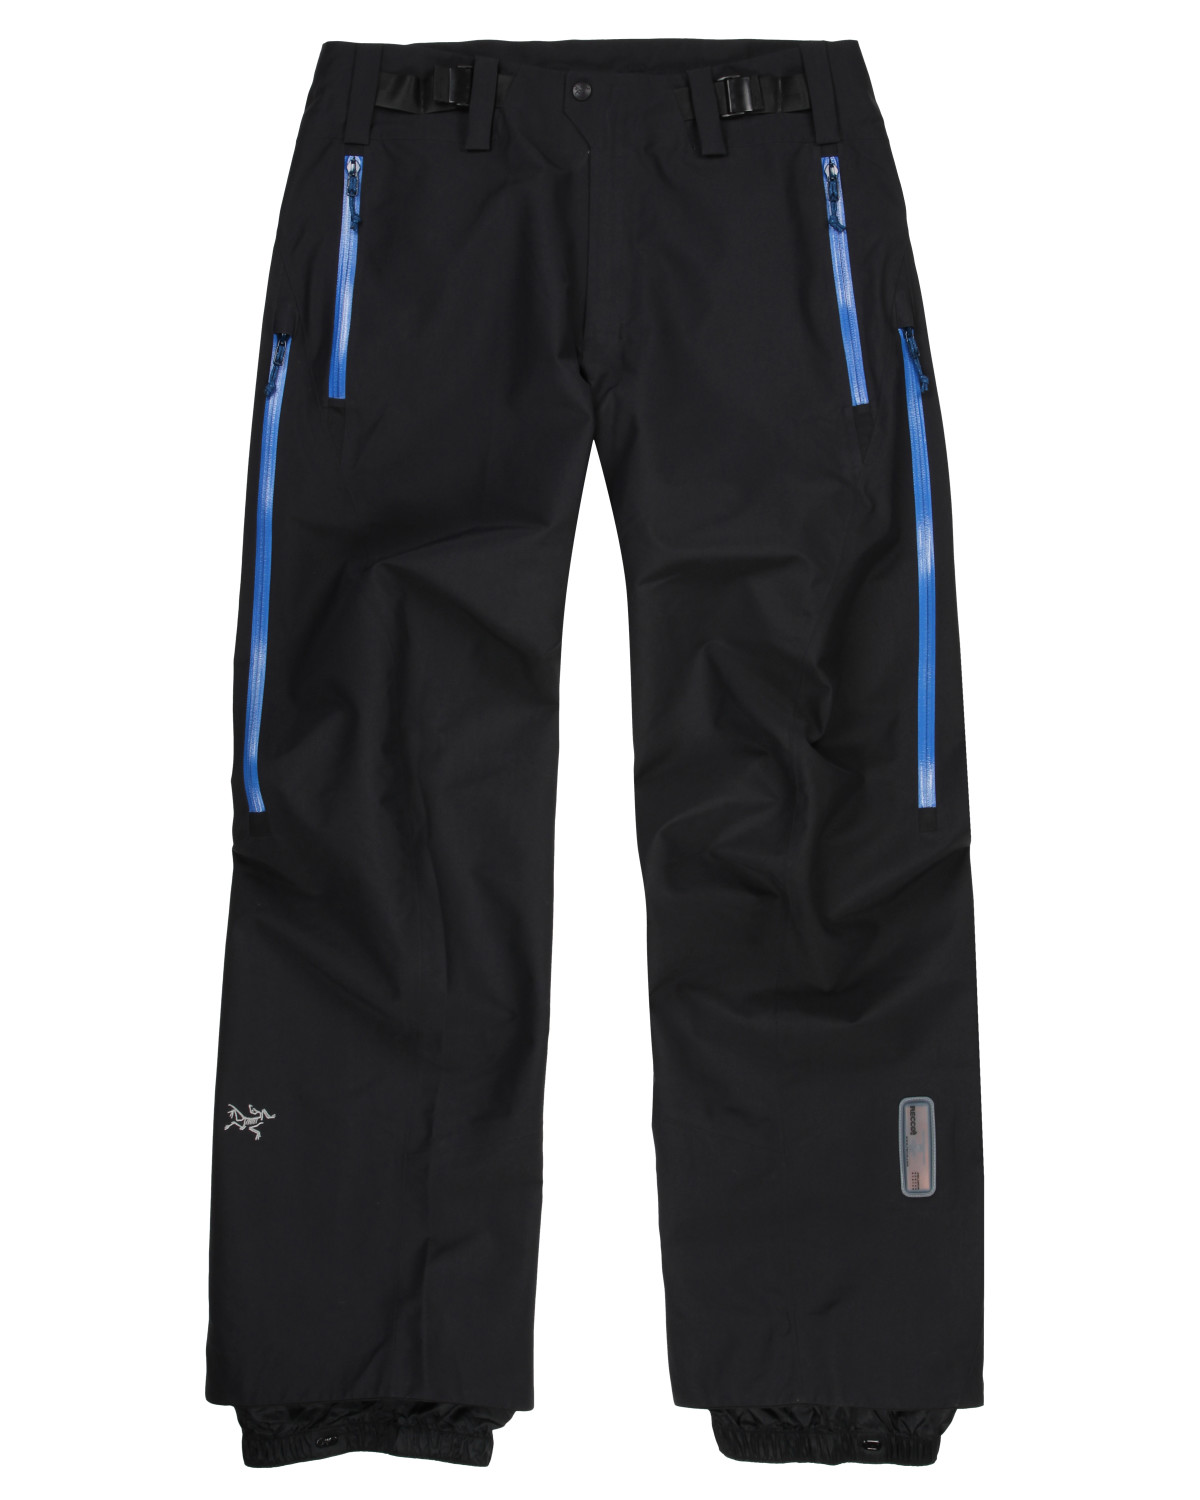 Main product image: Sidewinder SV Pant Men's